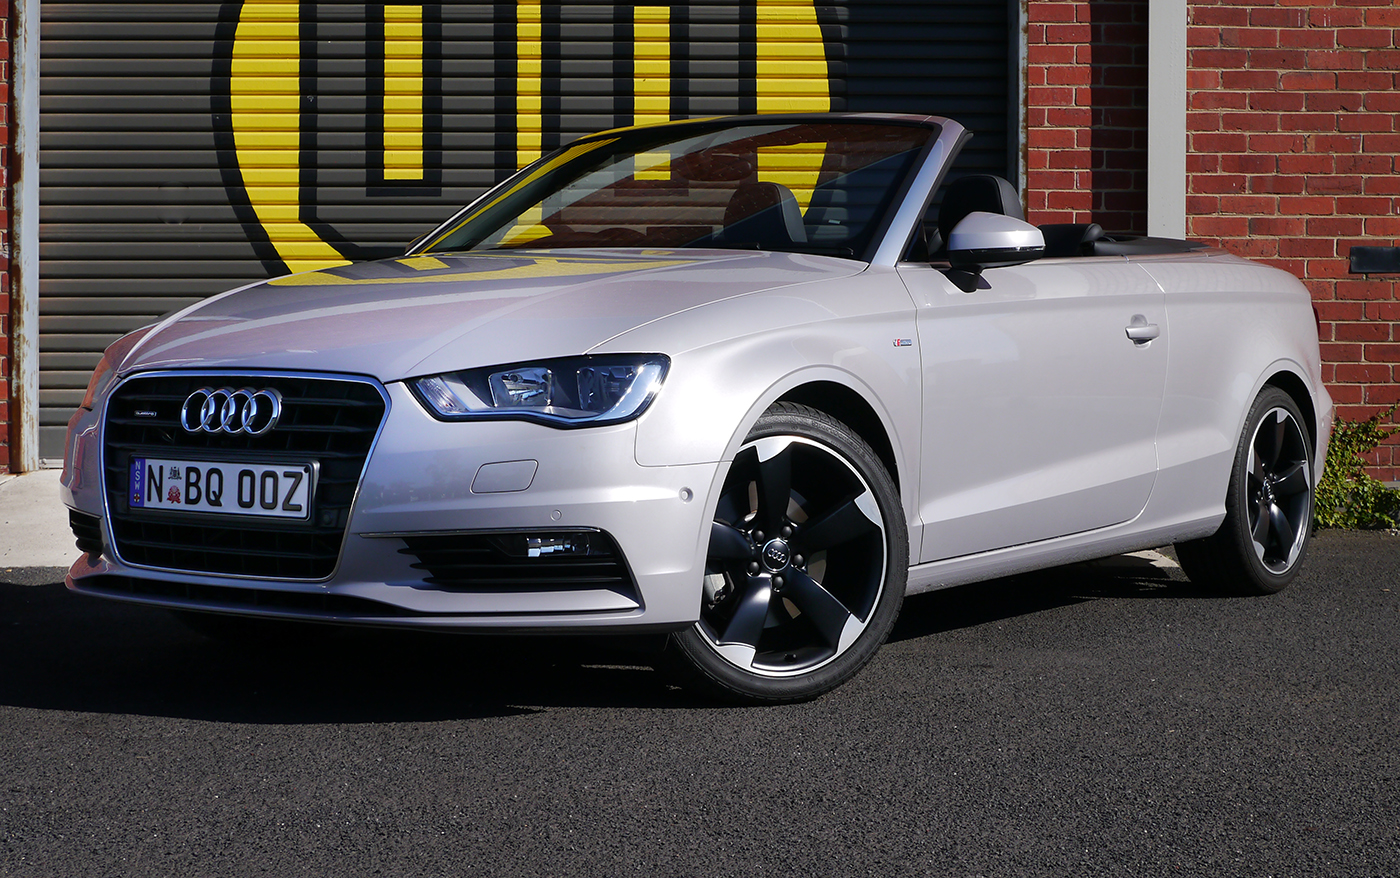 2015 Audi A3 Cabriolet Review: Ambition 1.8 TFSI - Droptop With Quattro Grip